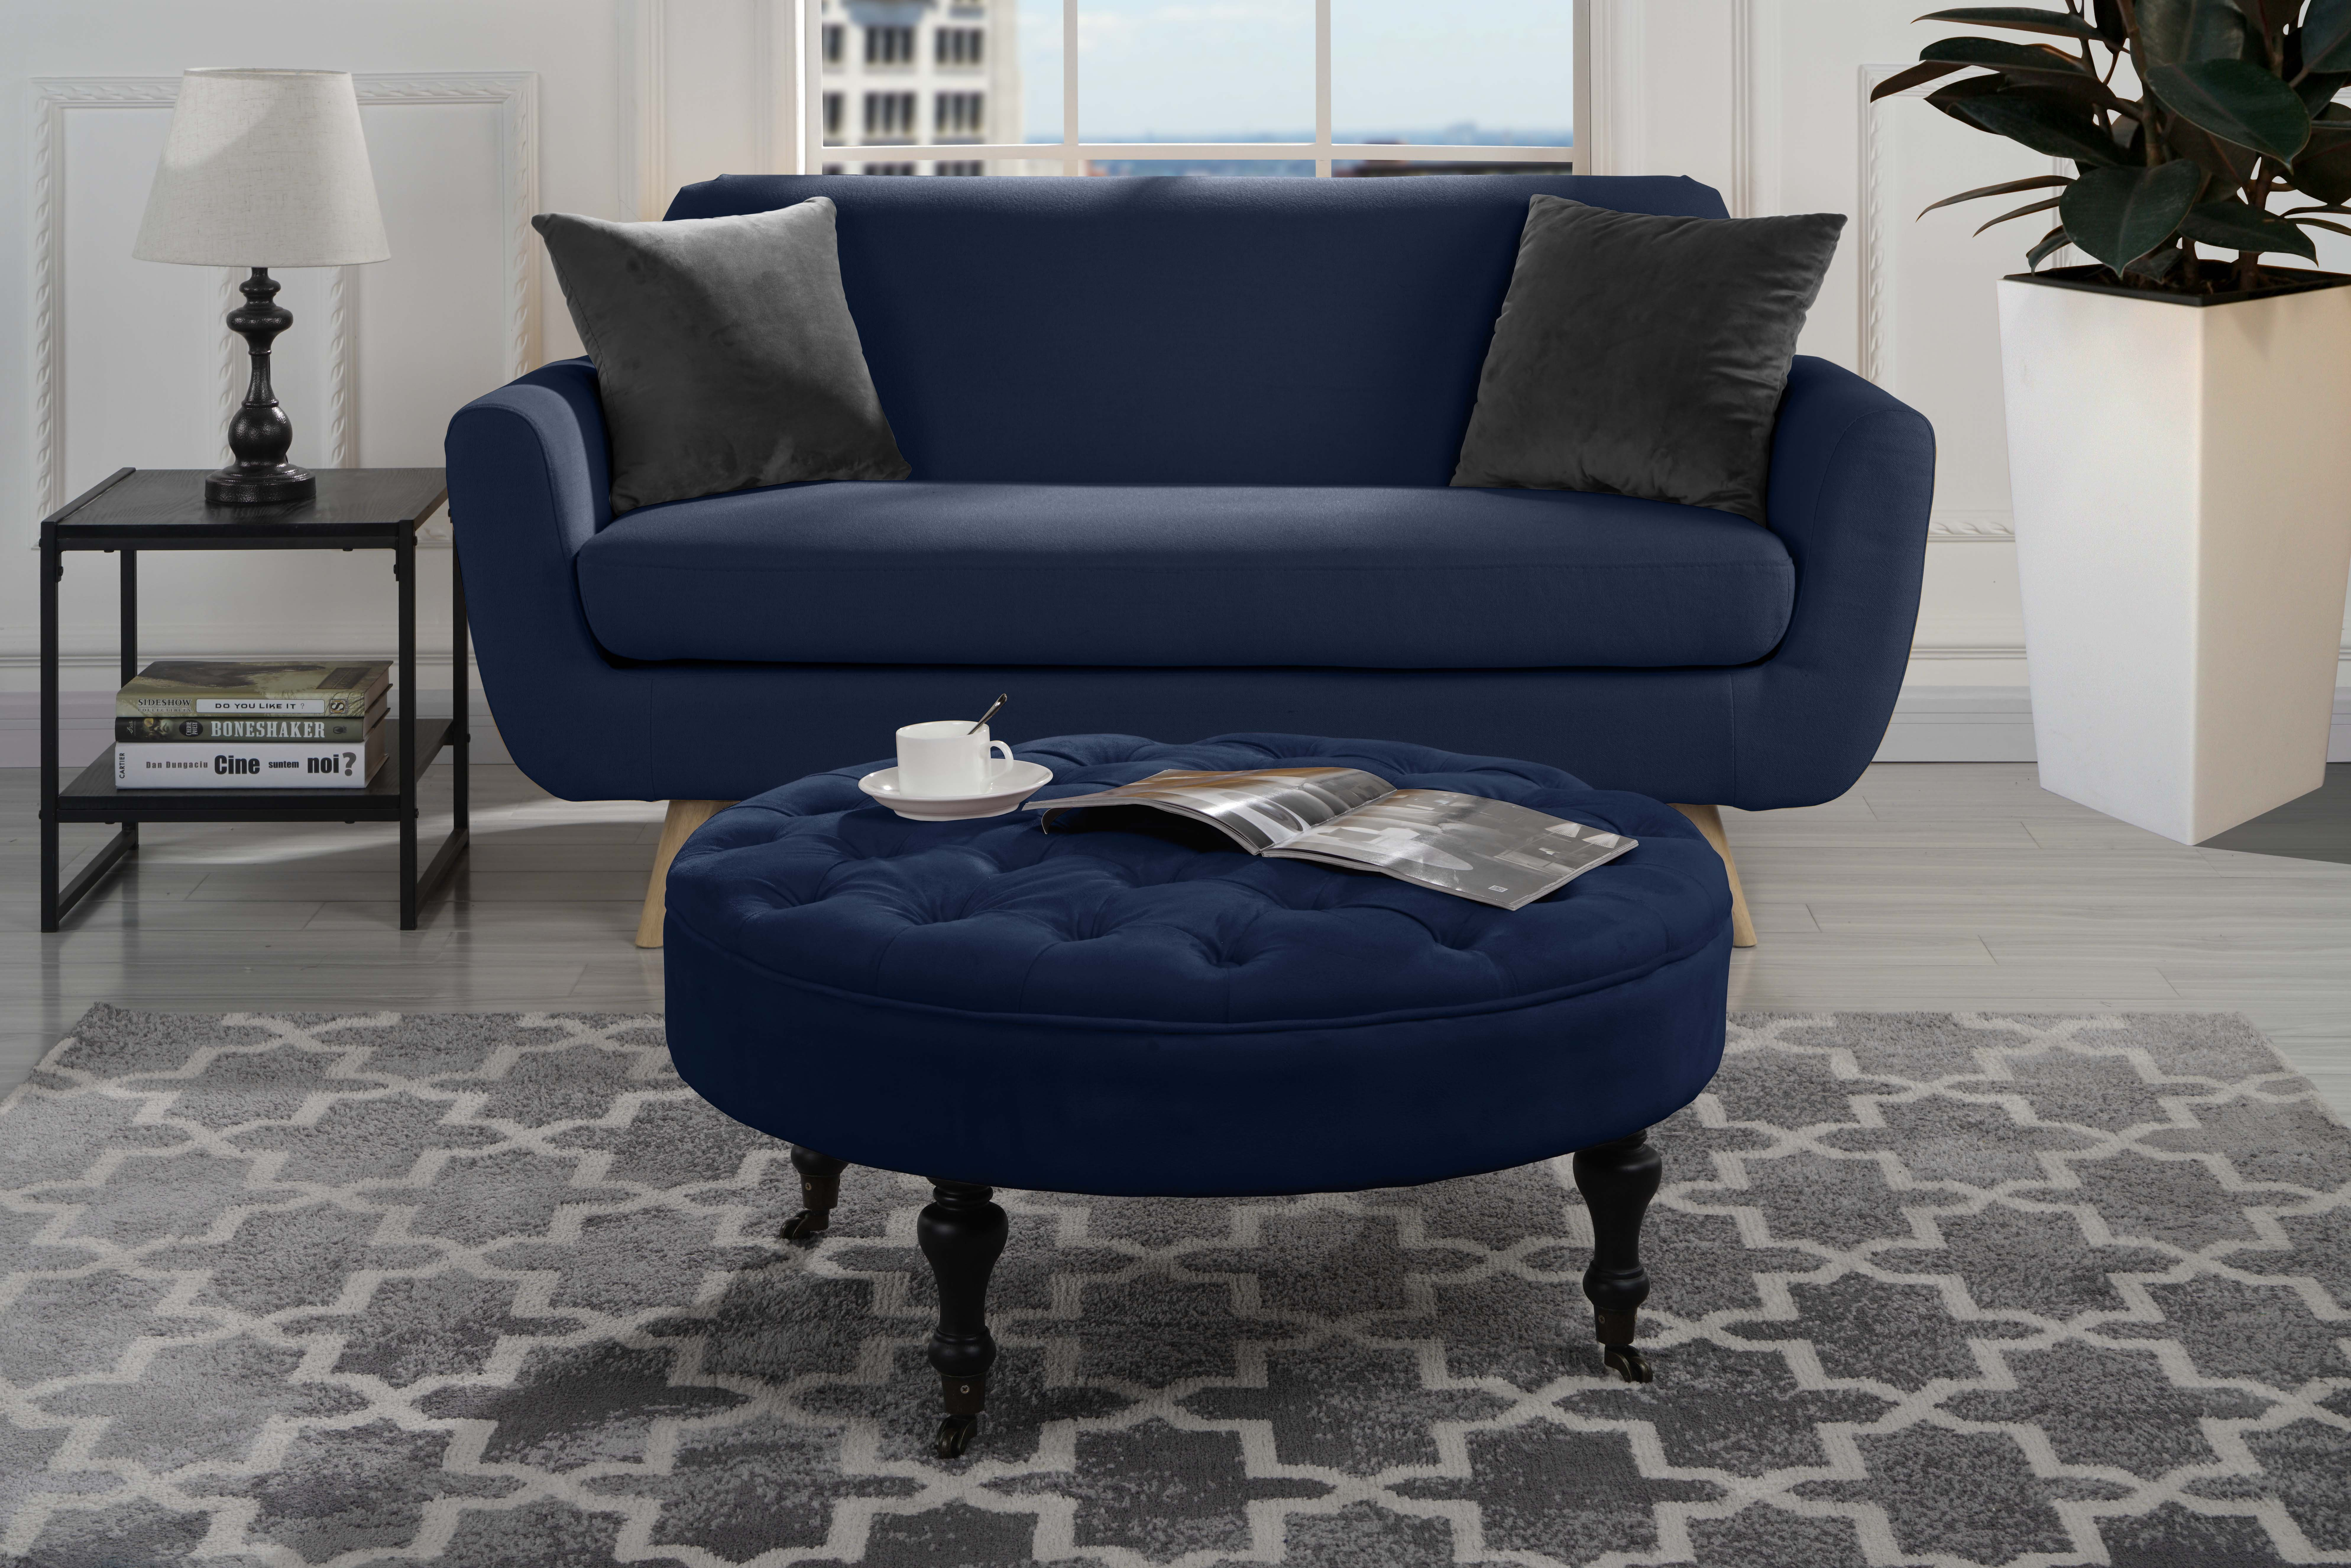 Etonnant Details About Modern Round Tufted Microfiber Coffee Table W/ Casters,  Ottoman W/ Wheels (Navy)